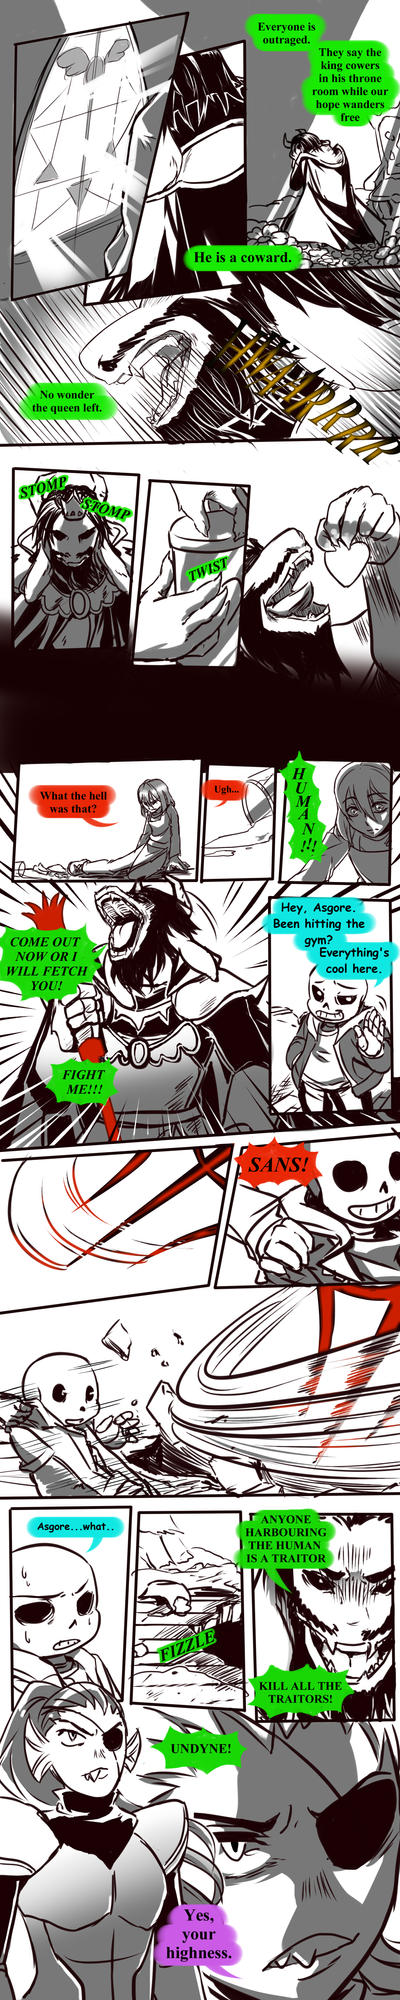 Failed Genocide! Undertale Gauntlet Throne Pt 2 by Dark-Merchant